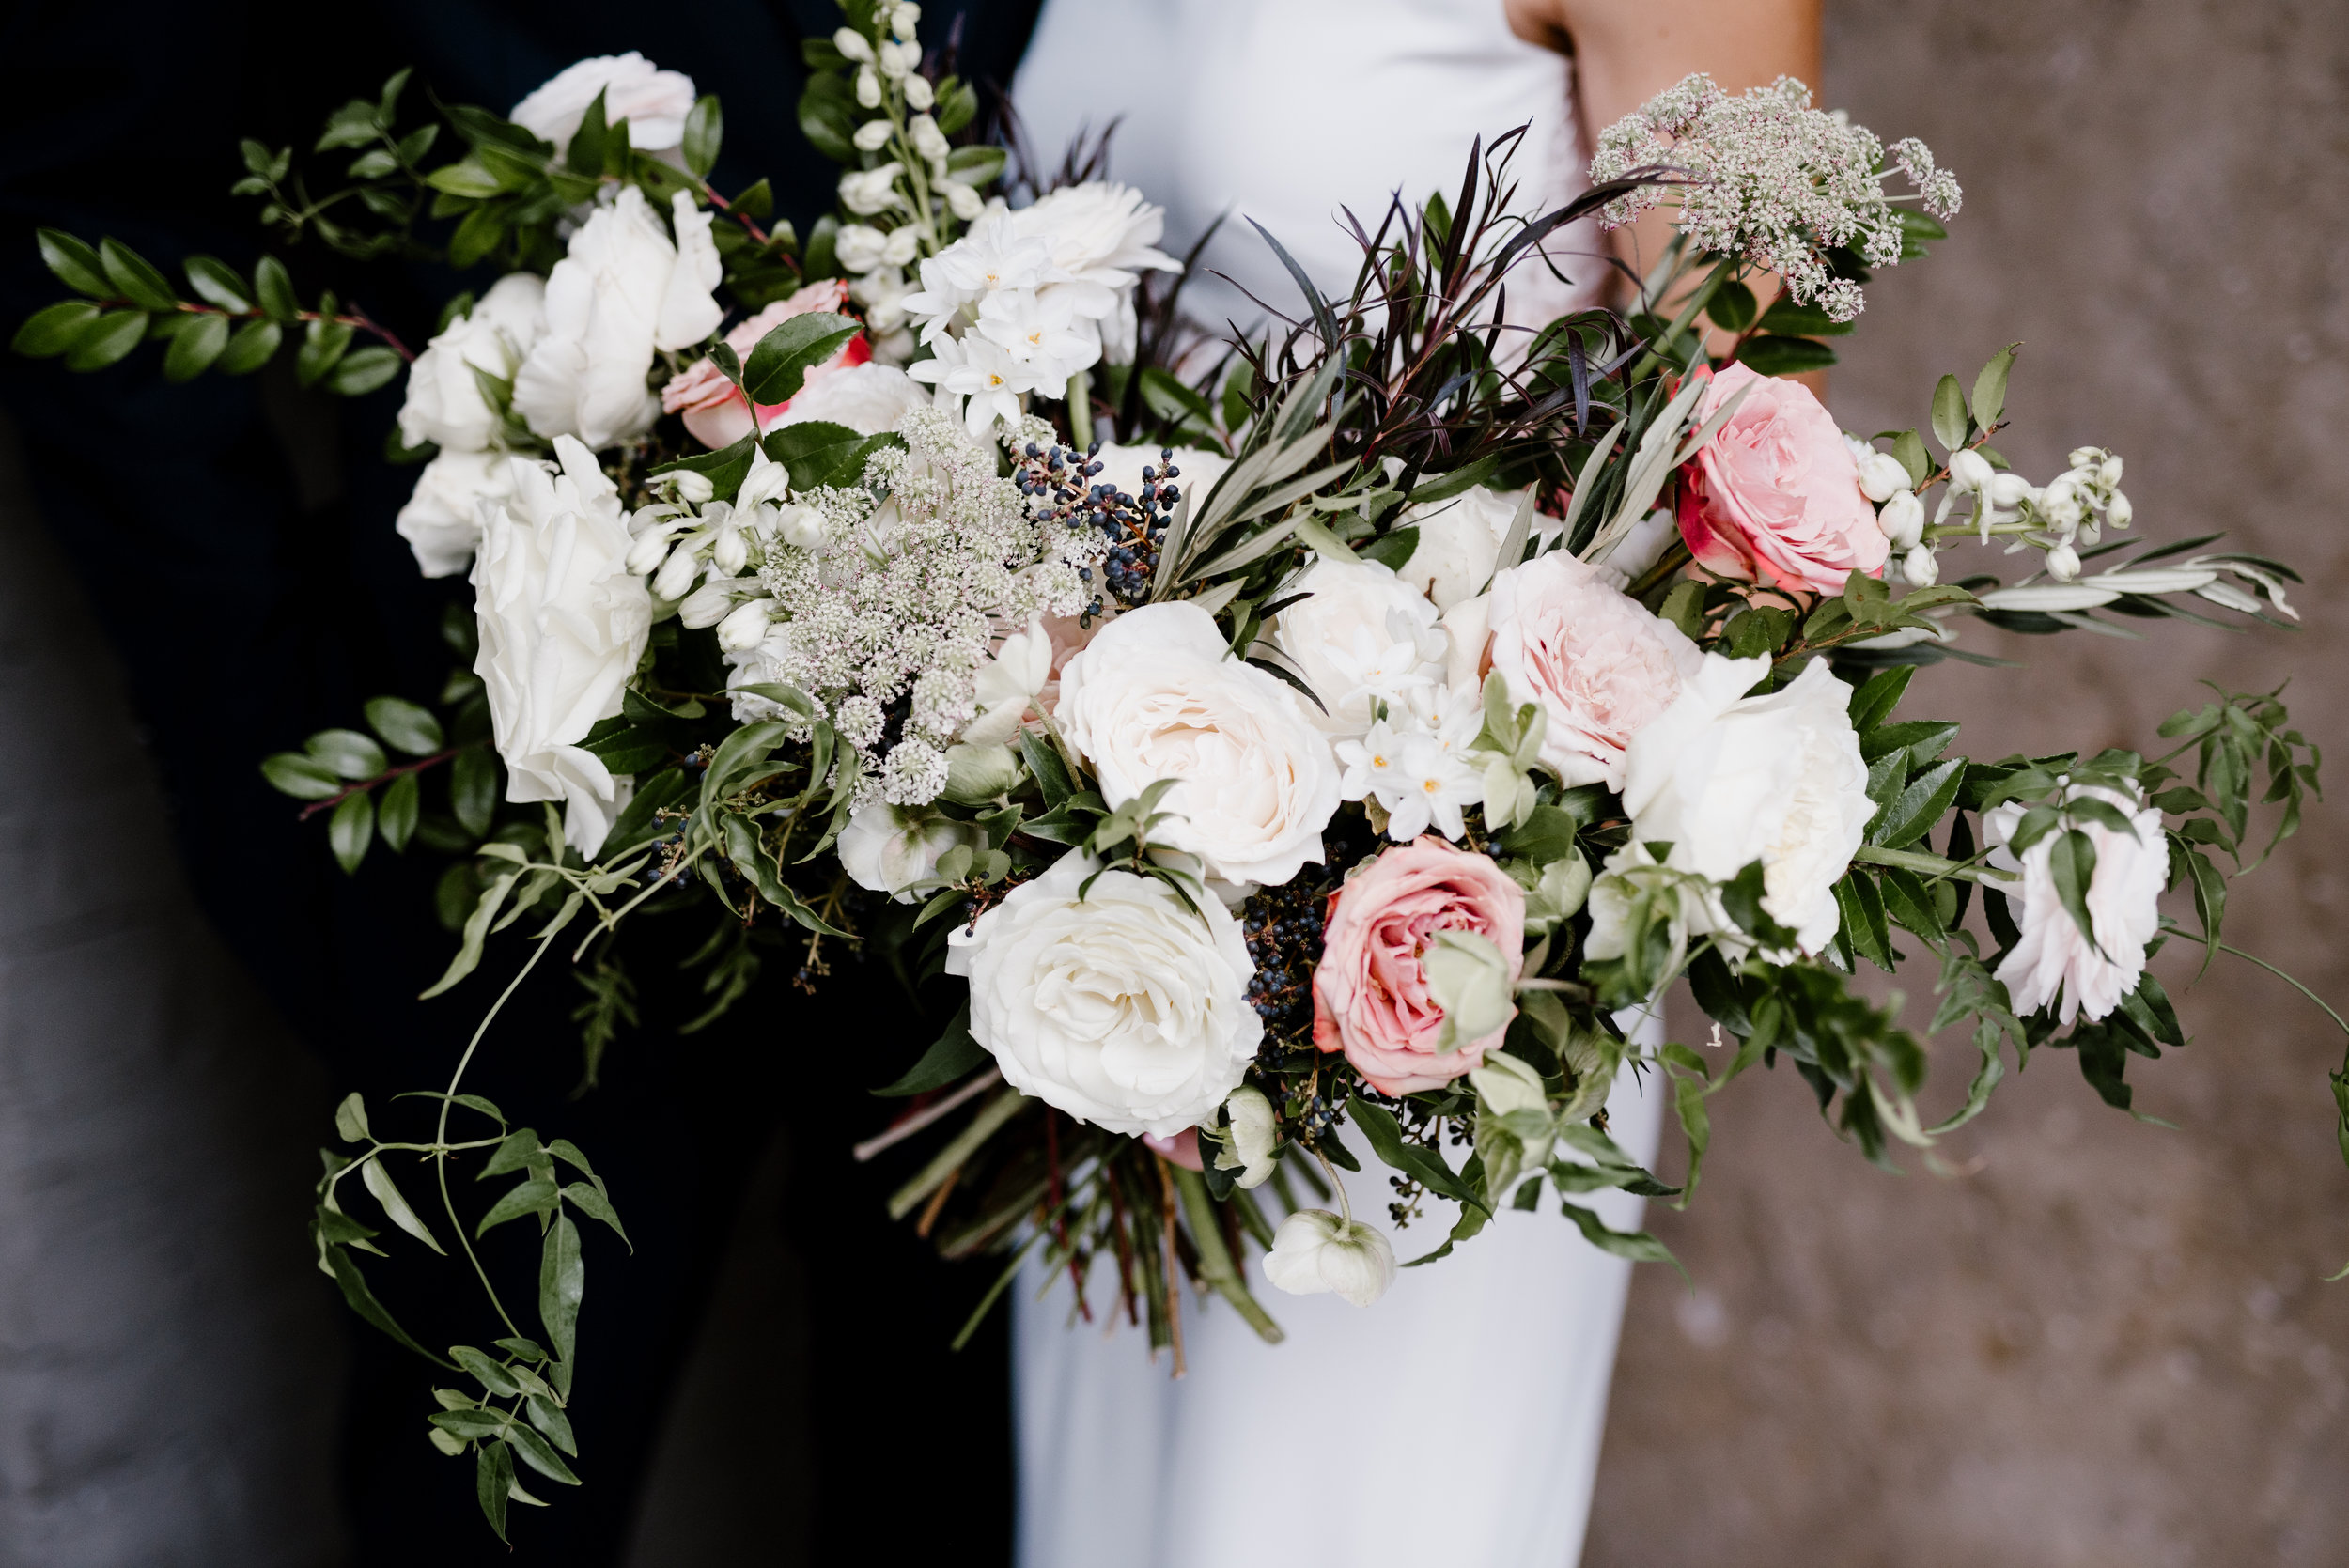 Lush bride's bouquet with garden roses, chocolate laceflower, ranunculus, and greenery// Nashville Wedding Flowers at the Cordelle